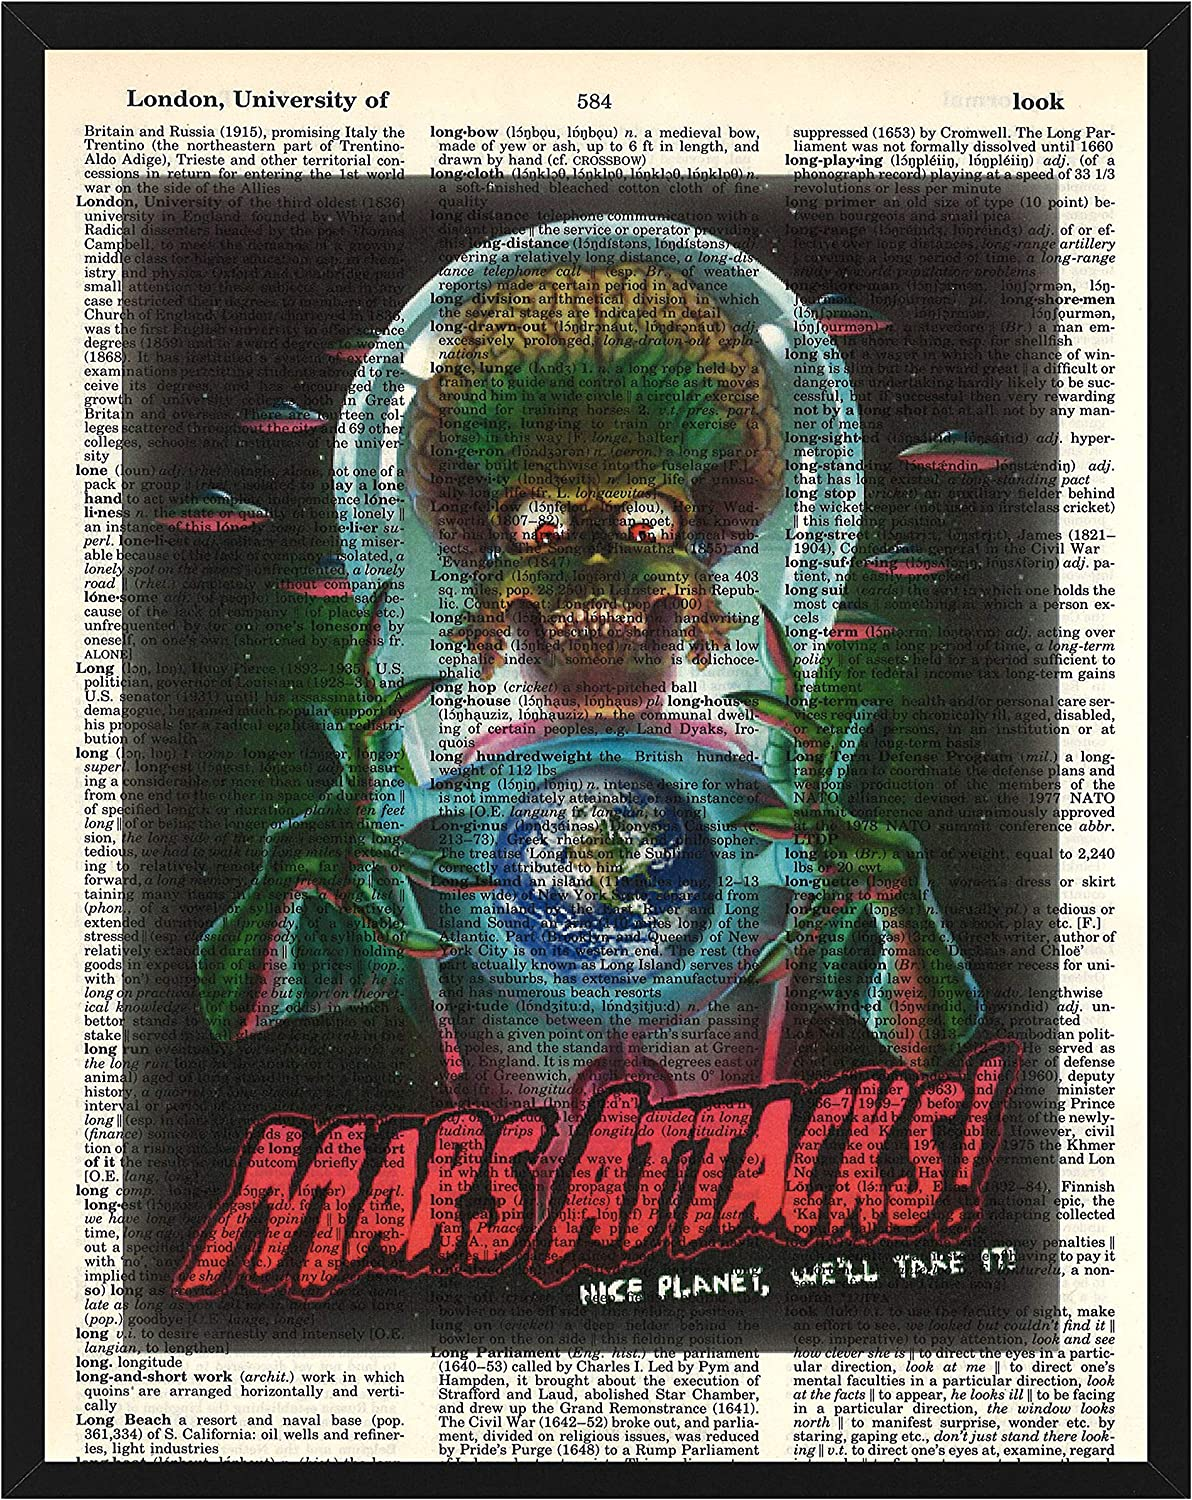 Mars Attacks! Wall Decor Mars Attacks Nice Planet We'll Take It! Dictionary Art Print 8 x 10